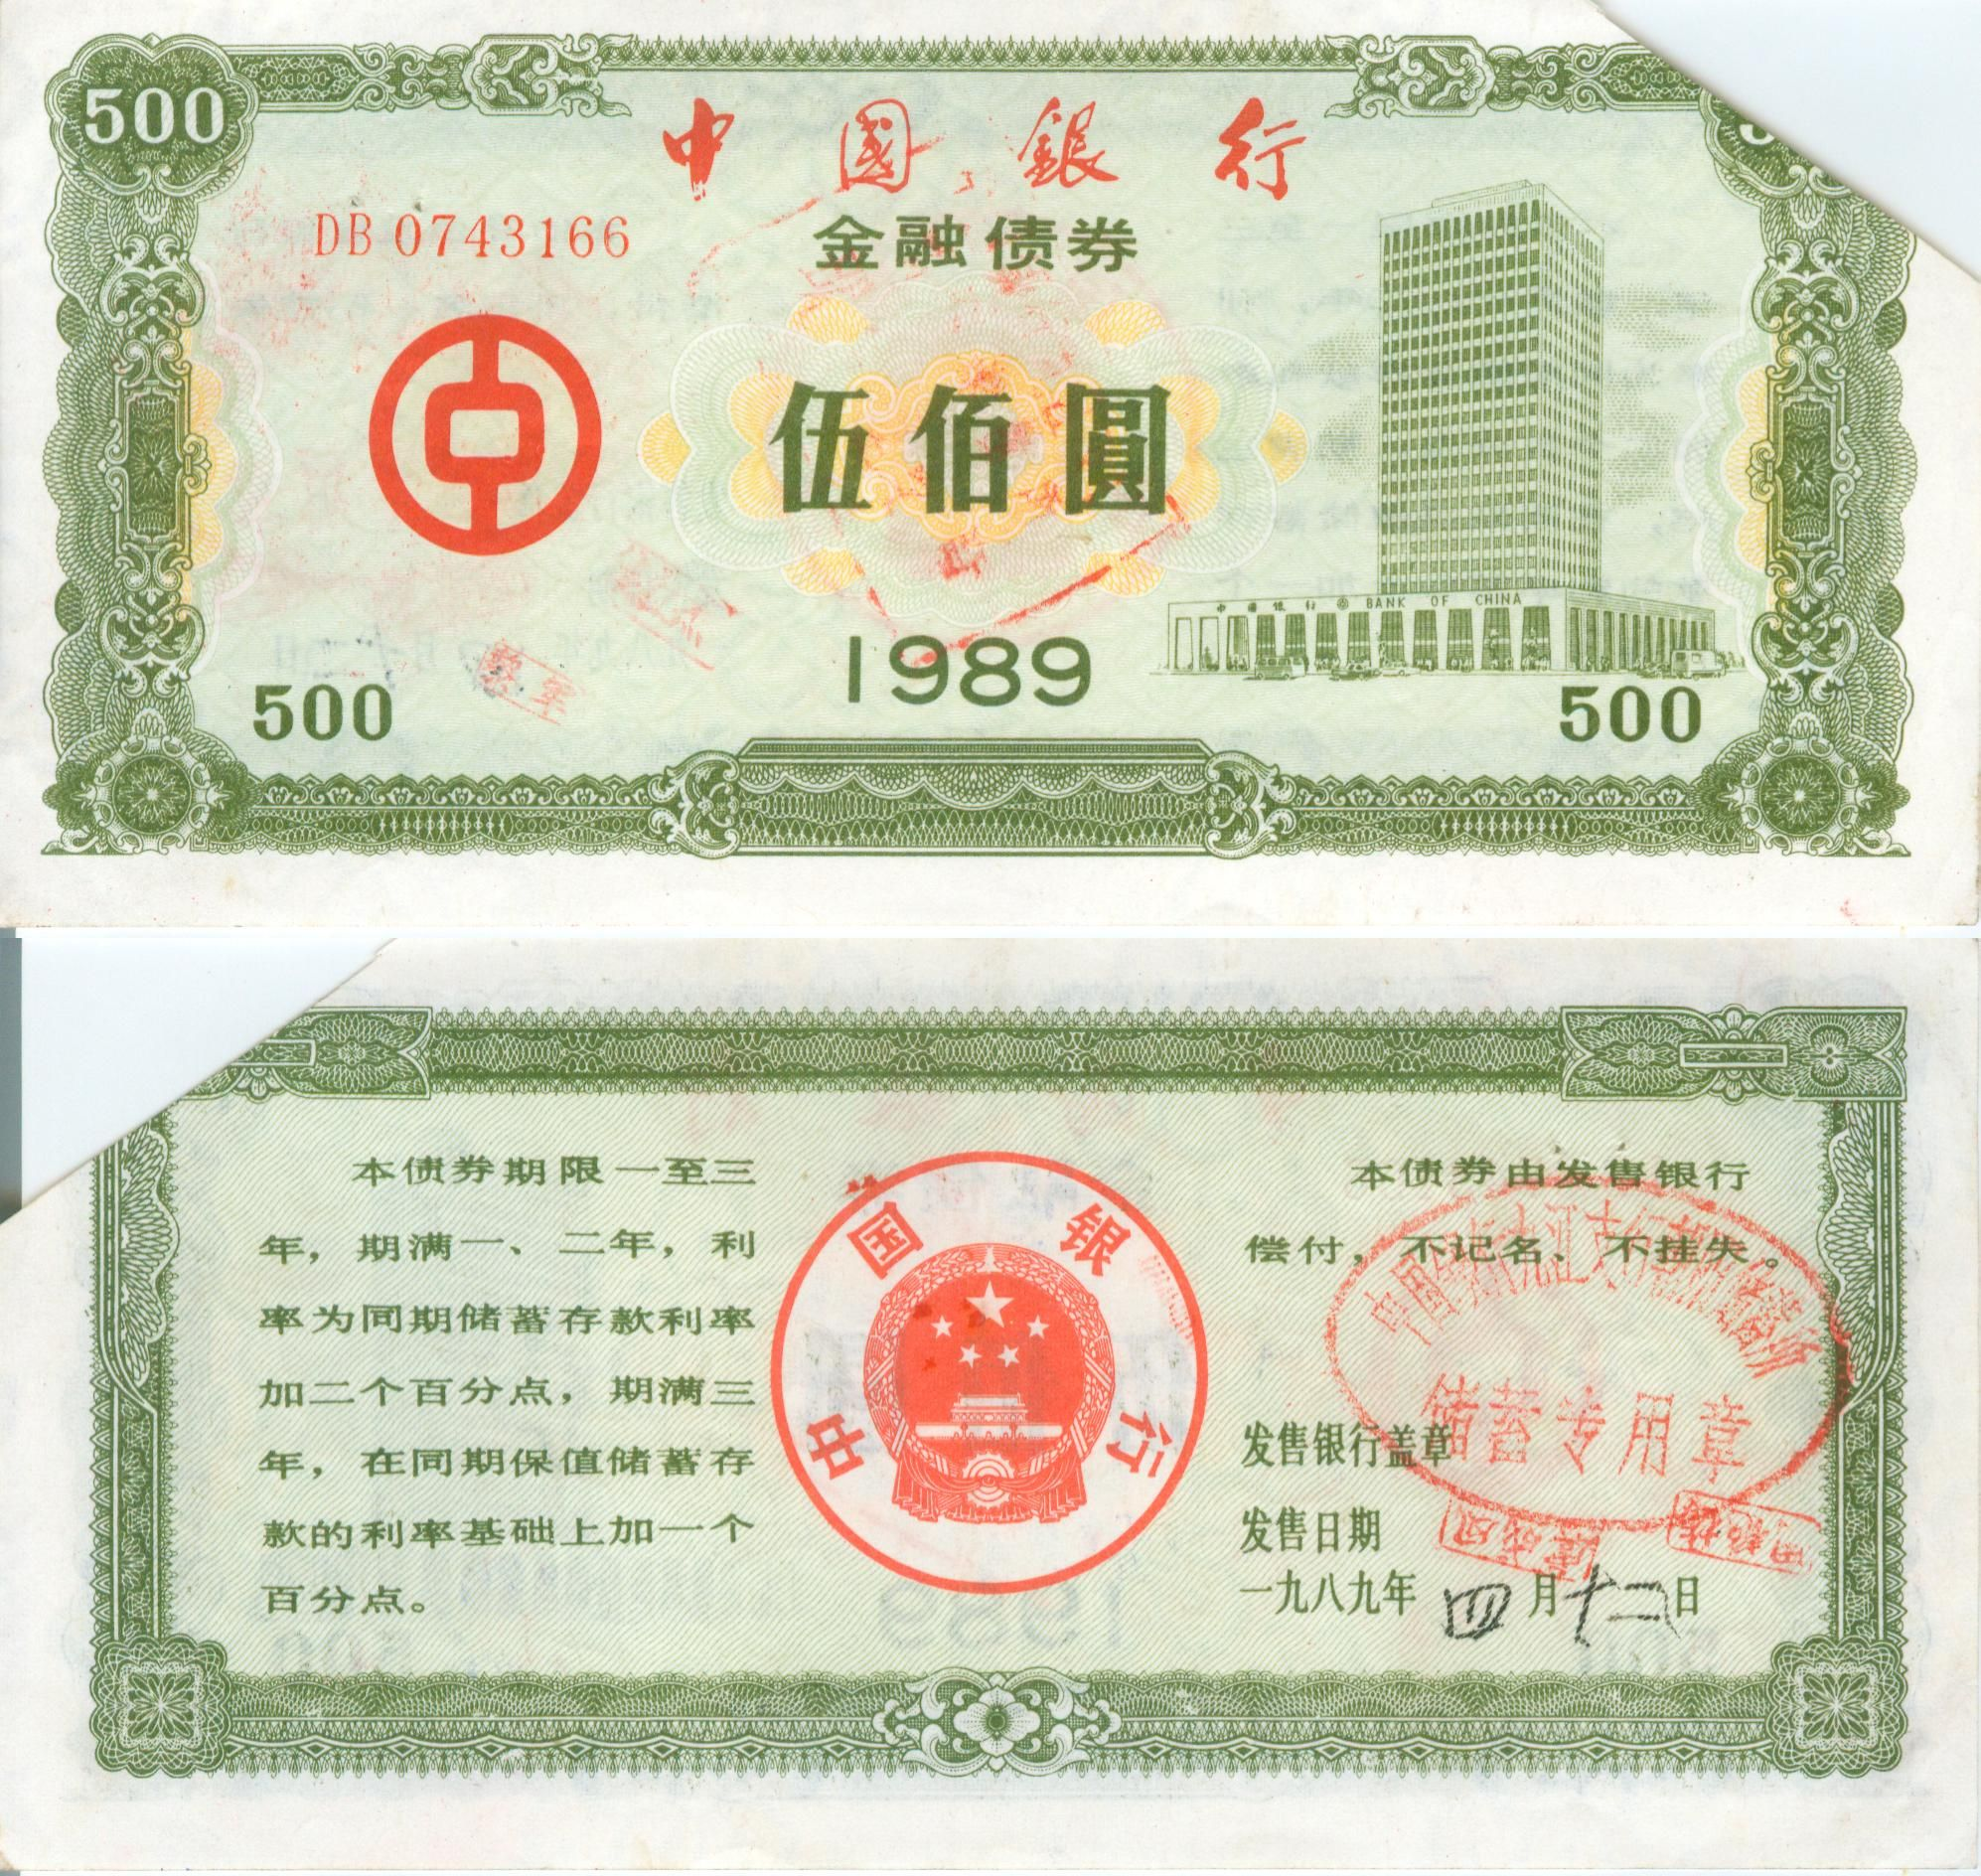 B7340, Bank of China, 9% Finance Bond 500 Yuan, 1989